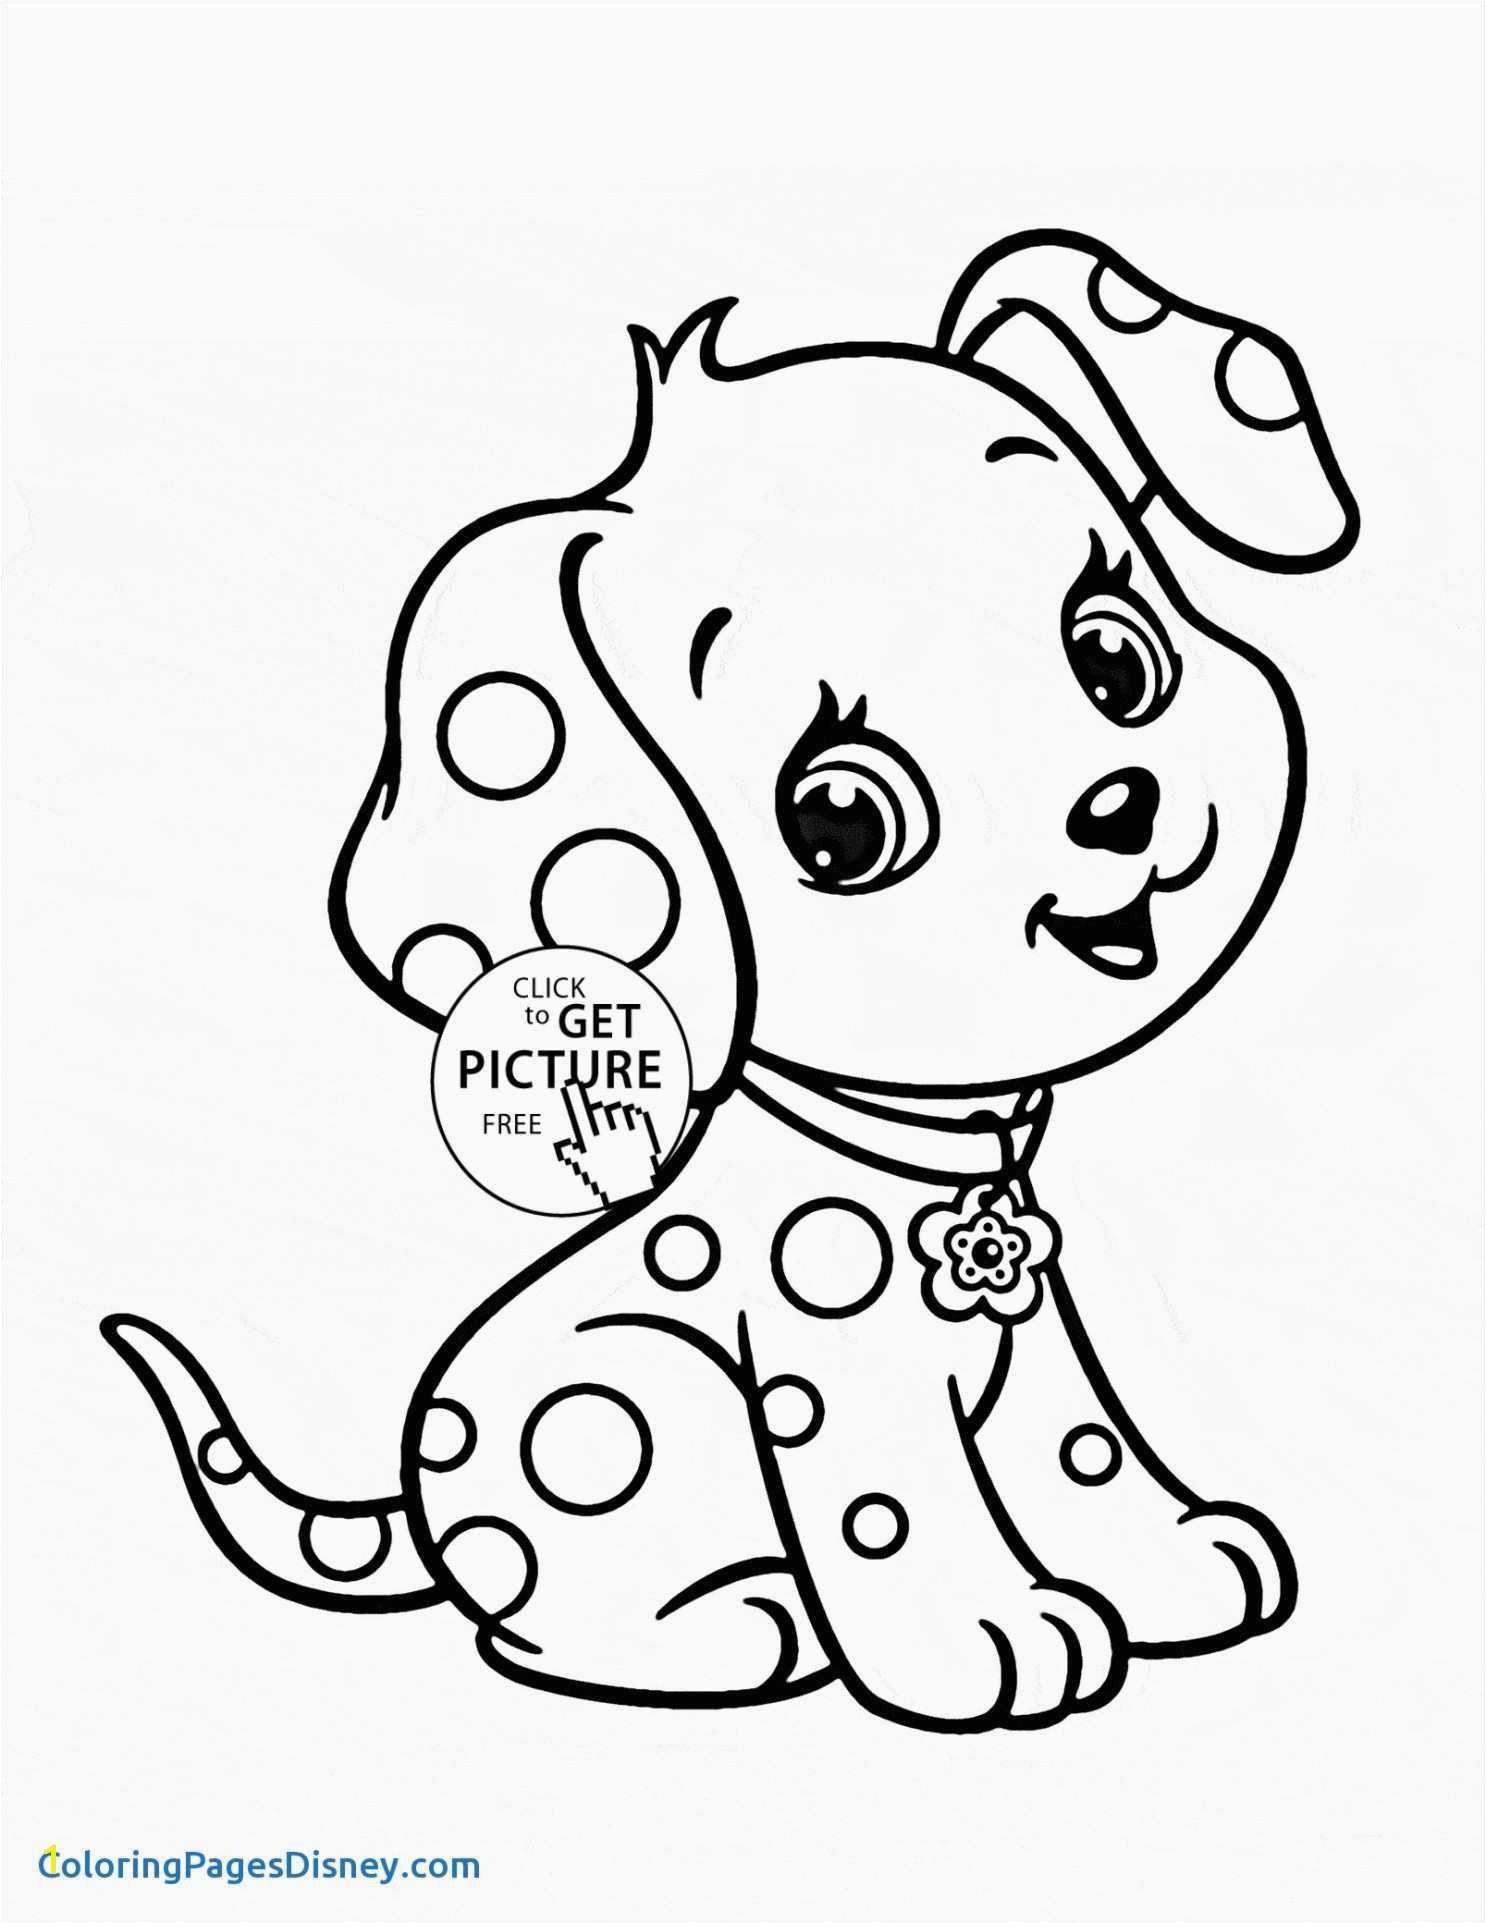 Coloring Pages for Adults Printable Free Coloring Pages Free for Adults New S Fun Art for Kids